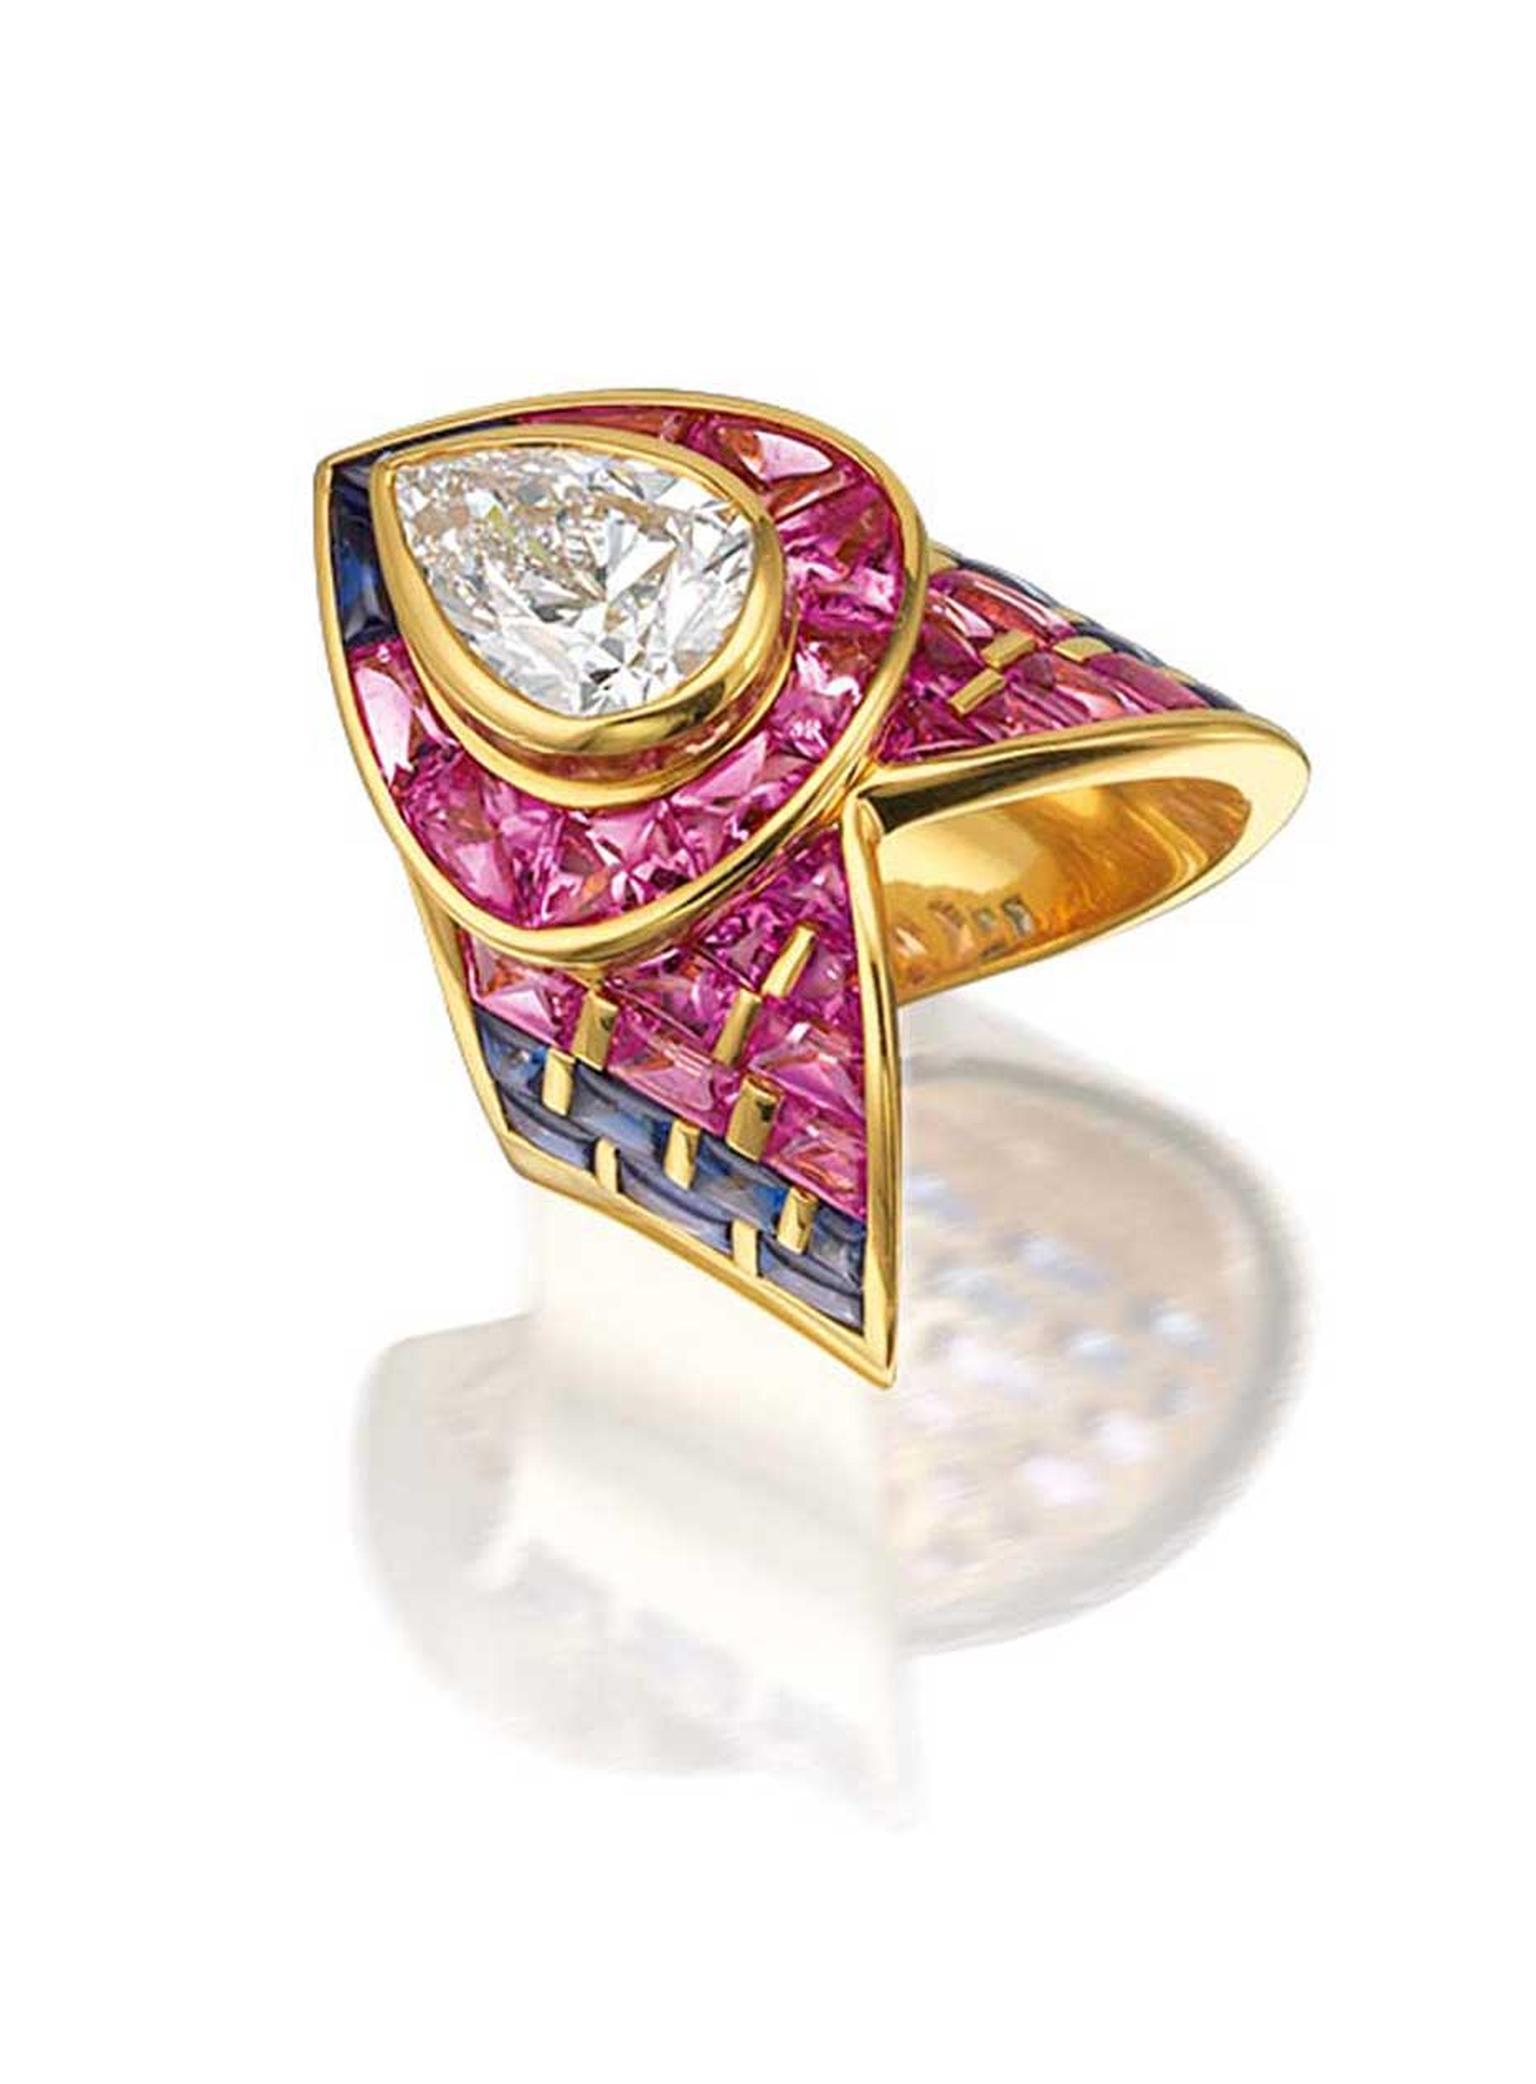 Marina B claw ring featuring a 3.02ct pear-shaped diamond surrounded by pink and blue sapphires (estimate: £27,300-43,000).